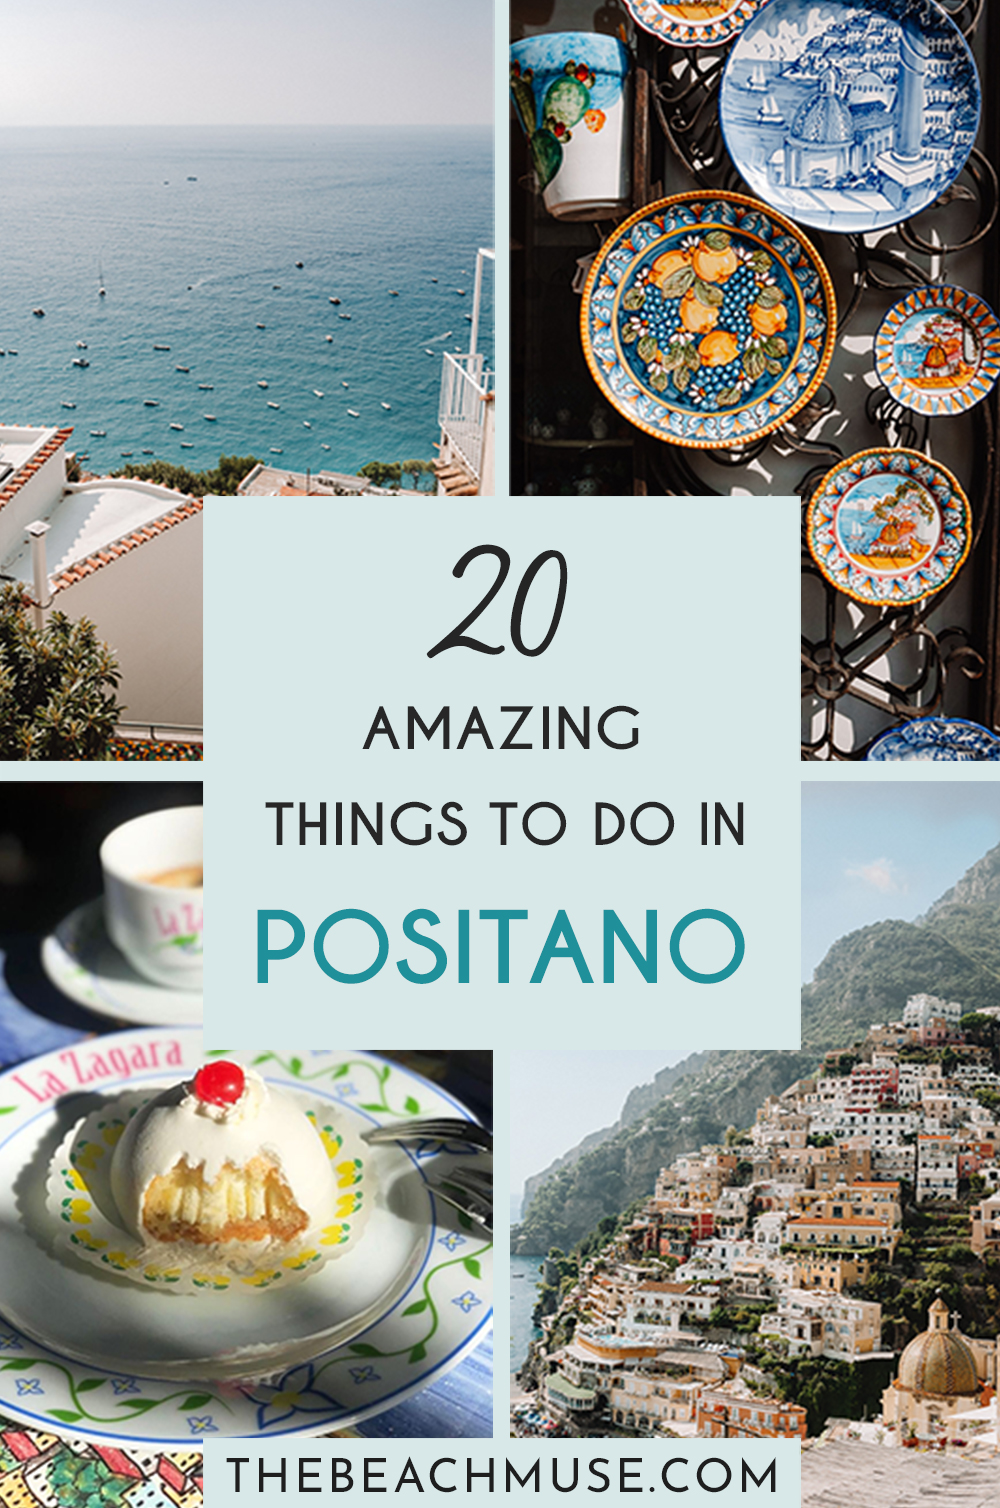 20 amazing things to do in Positano